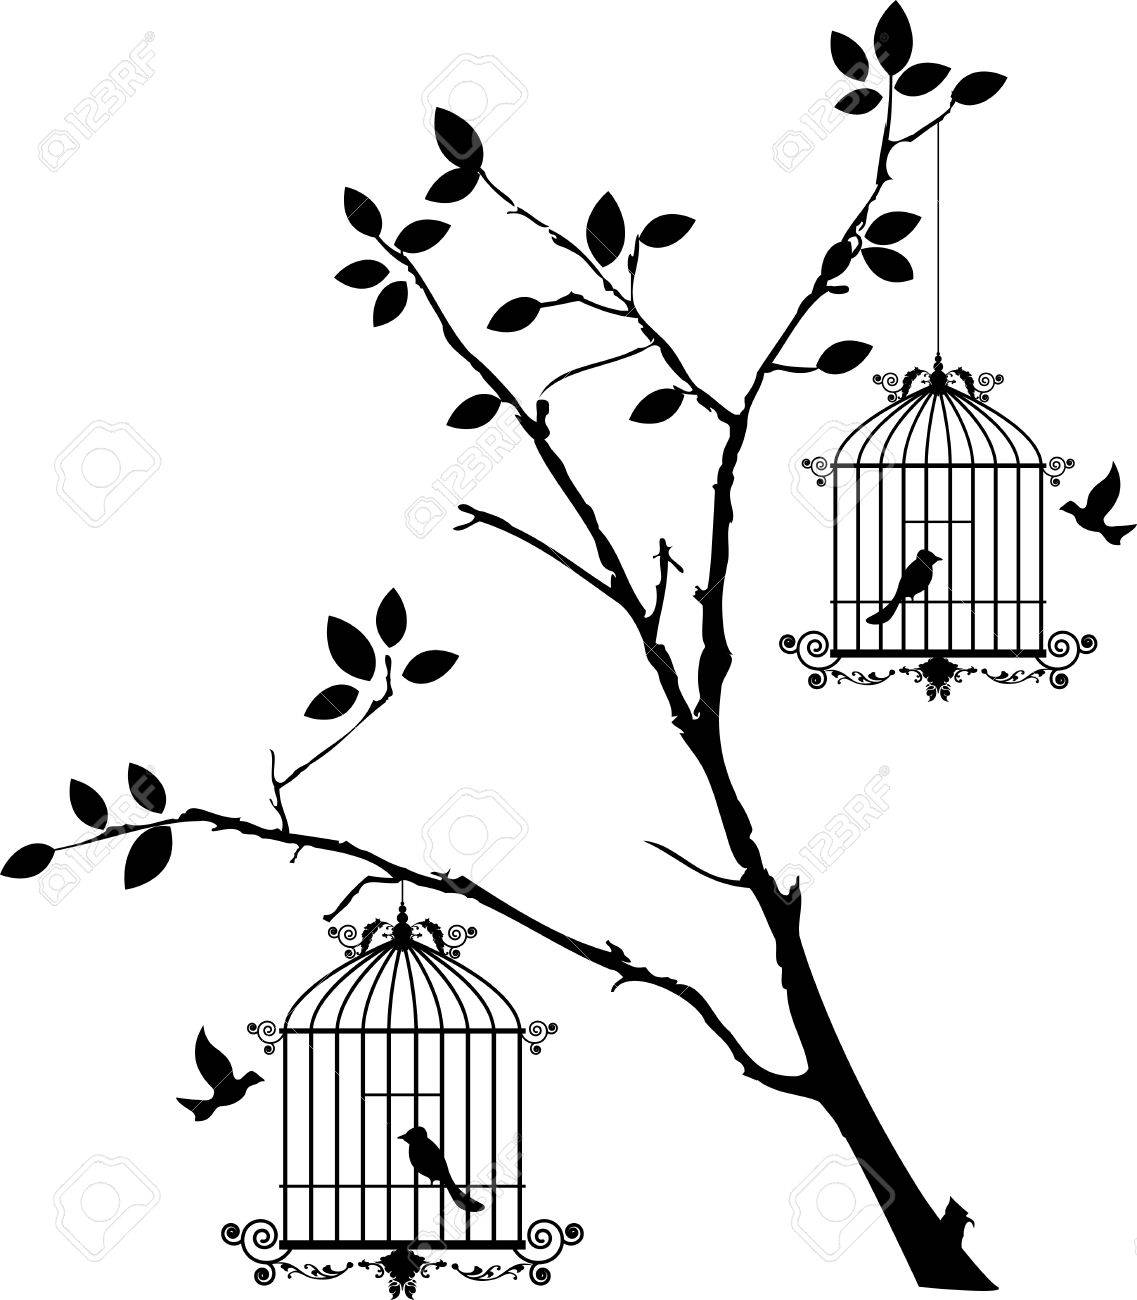 1137x1300 Tree Silhouette With Birds Flying And Bird In A Cage Royalty Free